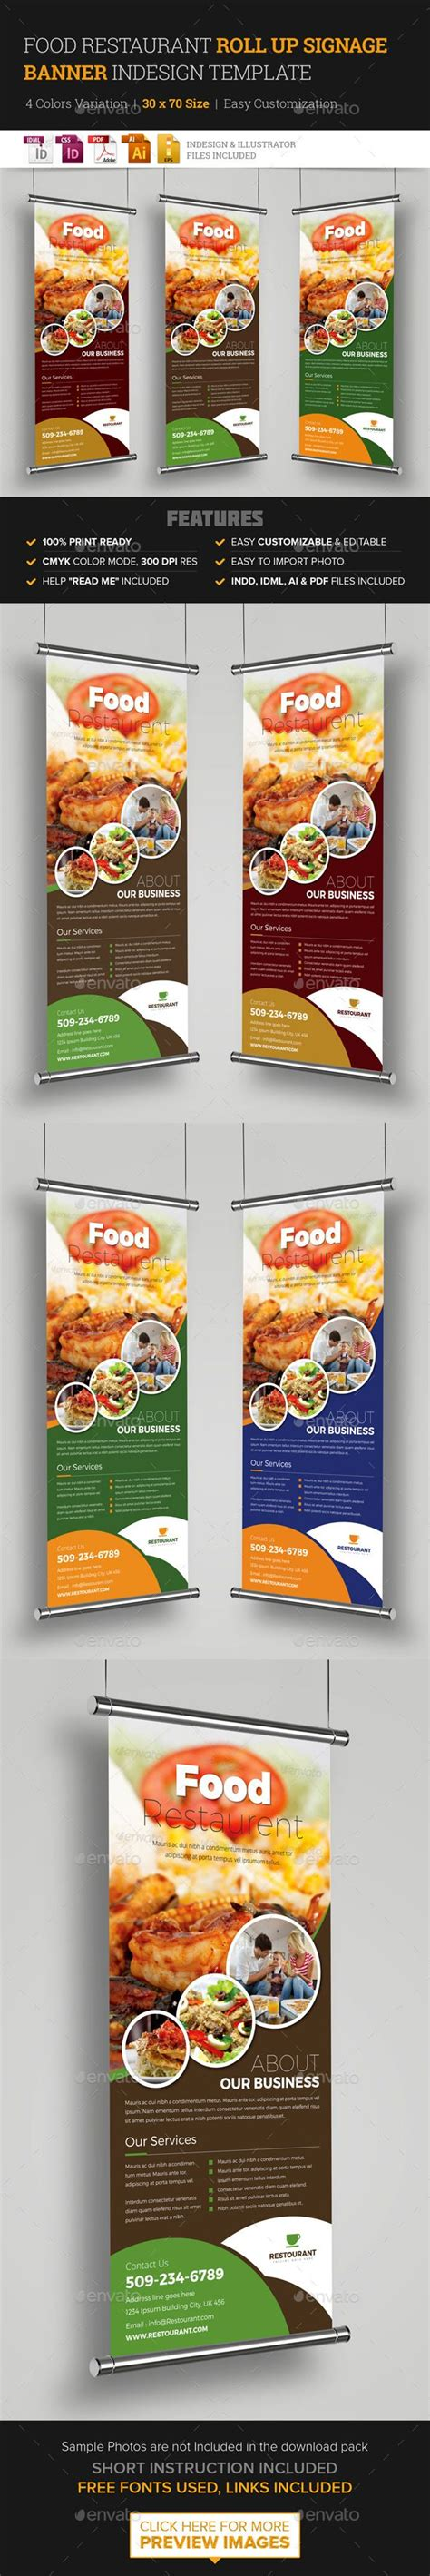 food restaurant roll up banner signage template magazine